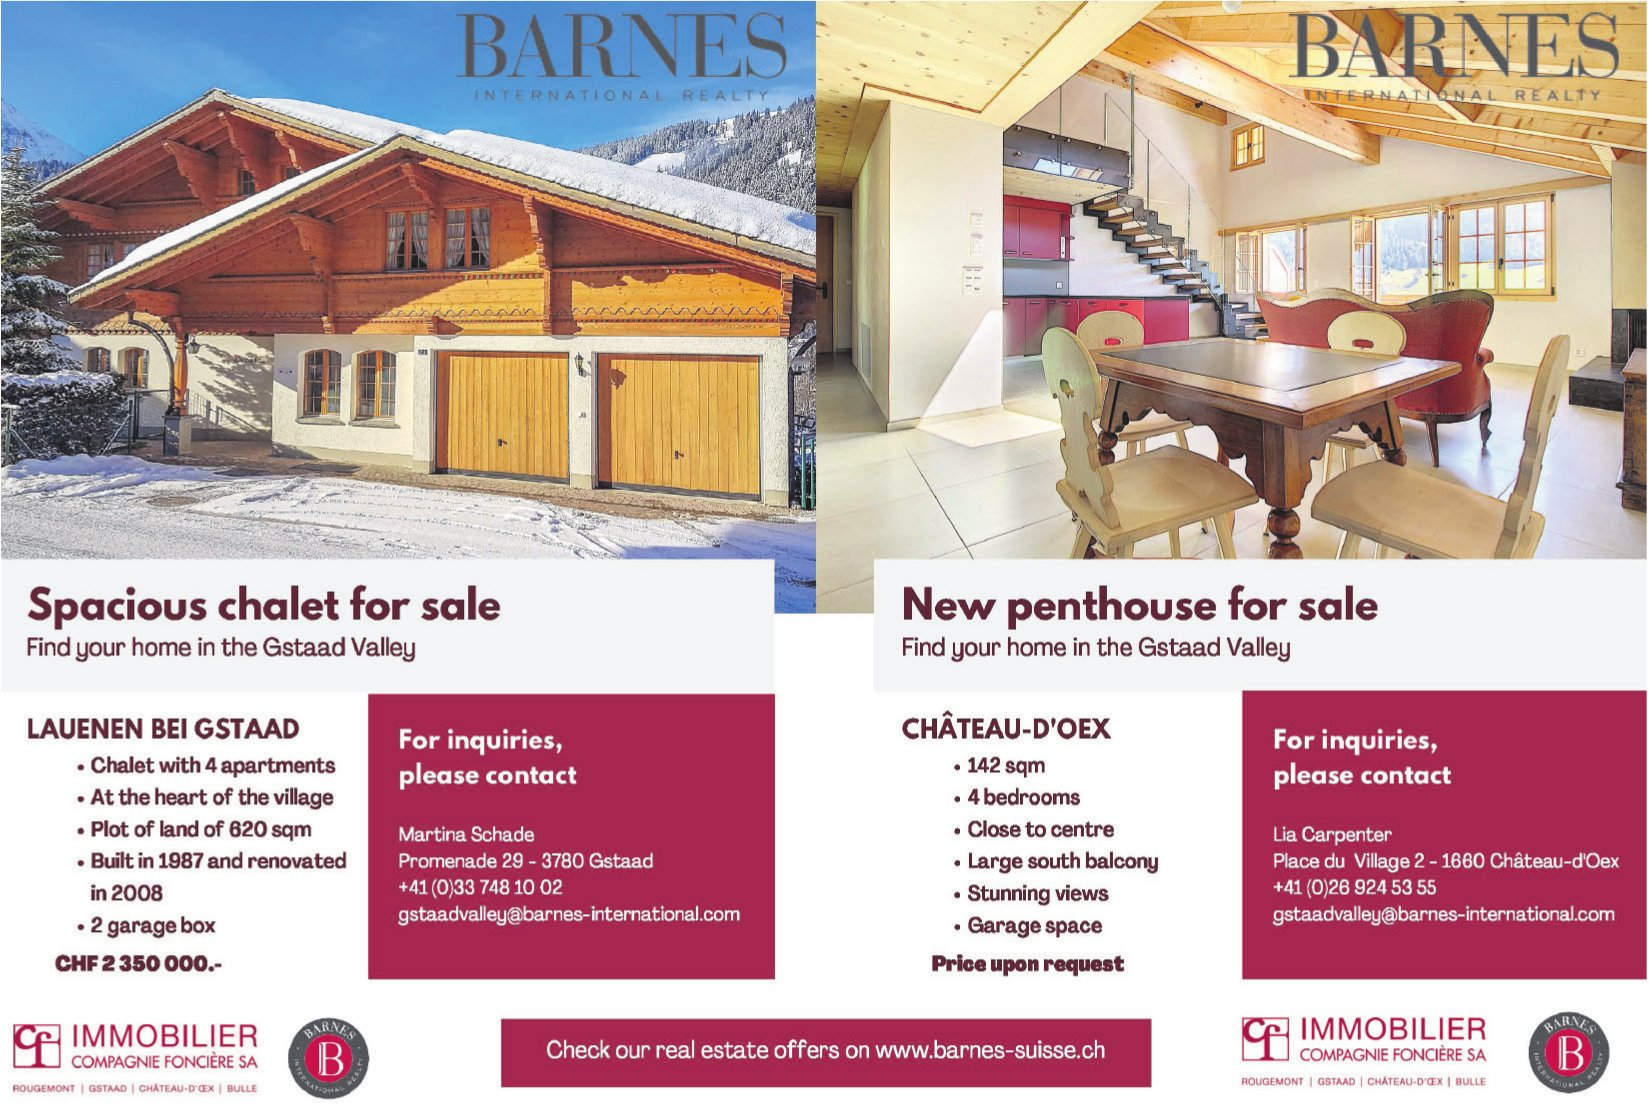 Chalet with 4 apartments & penthouse with 4 bedrooms, Lauenen & Château-d'Oex, for sale